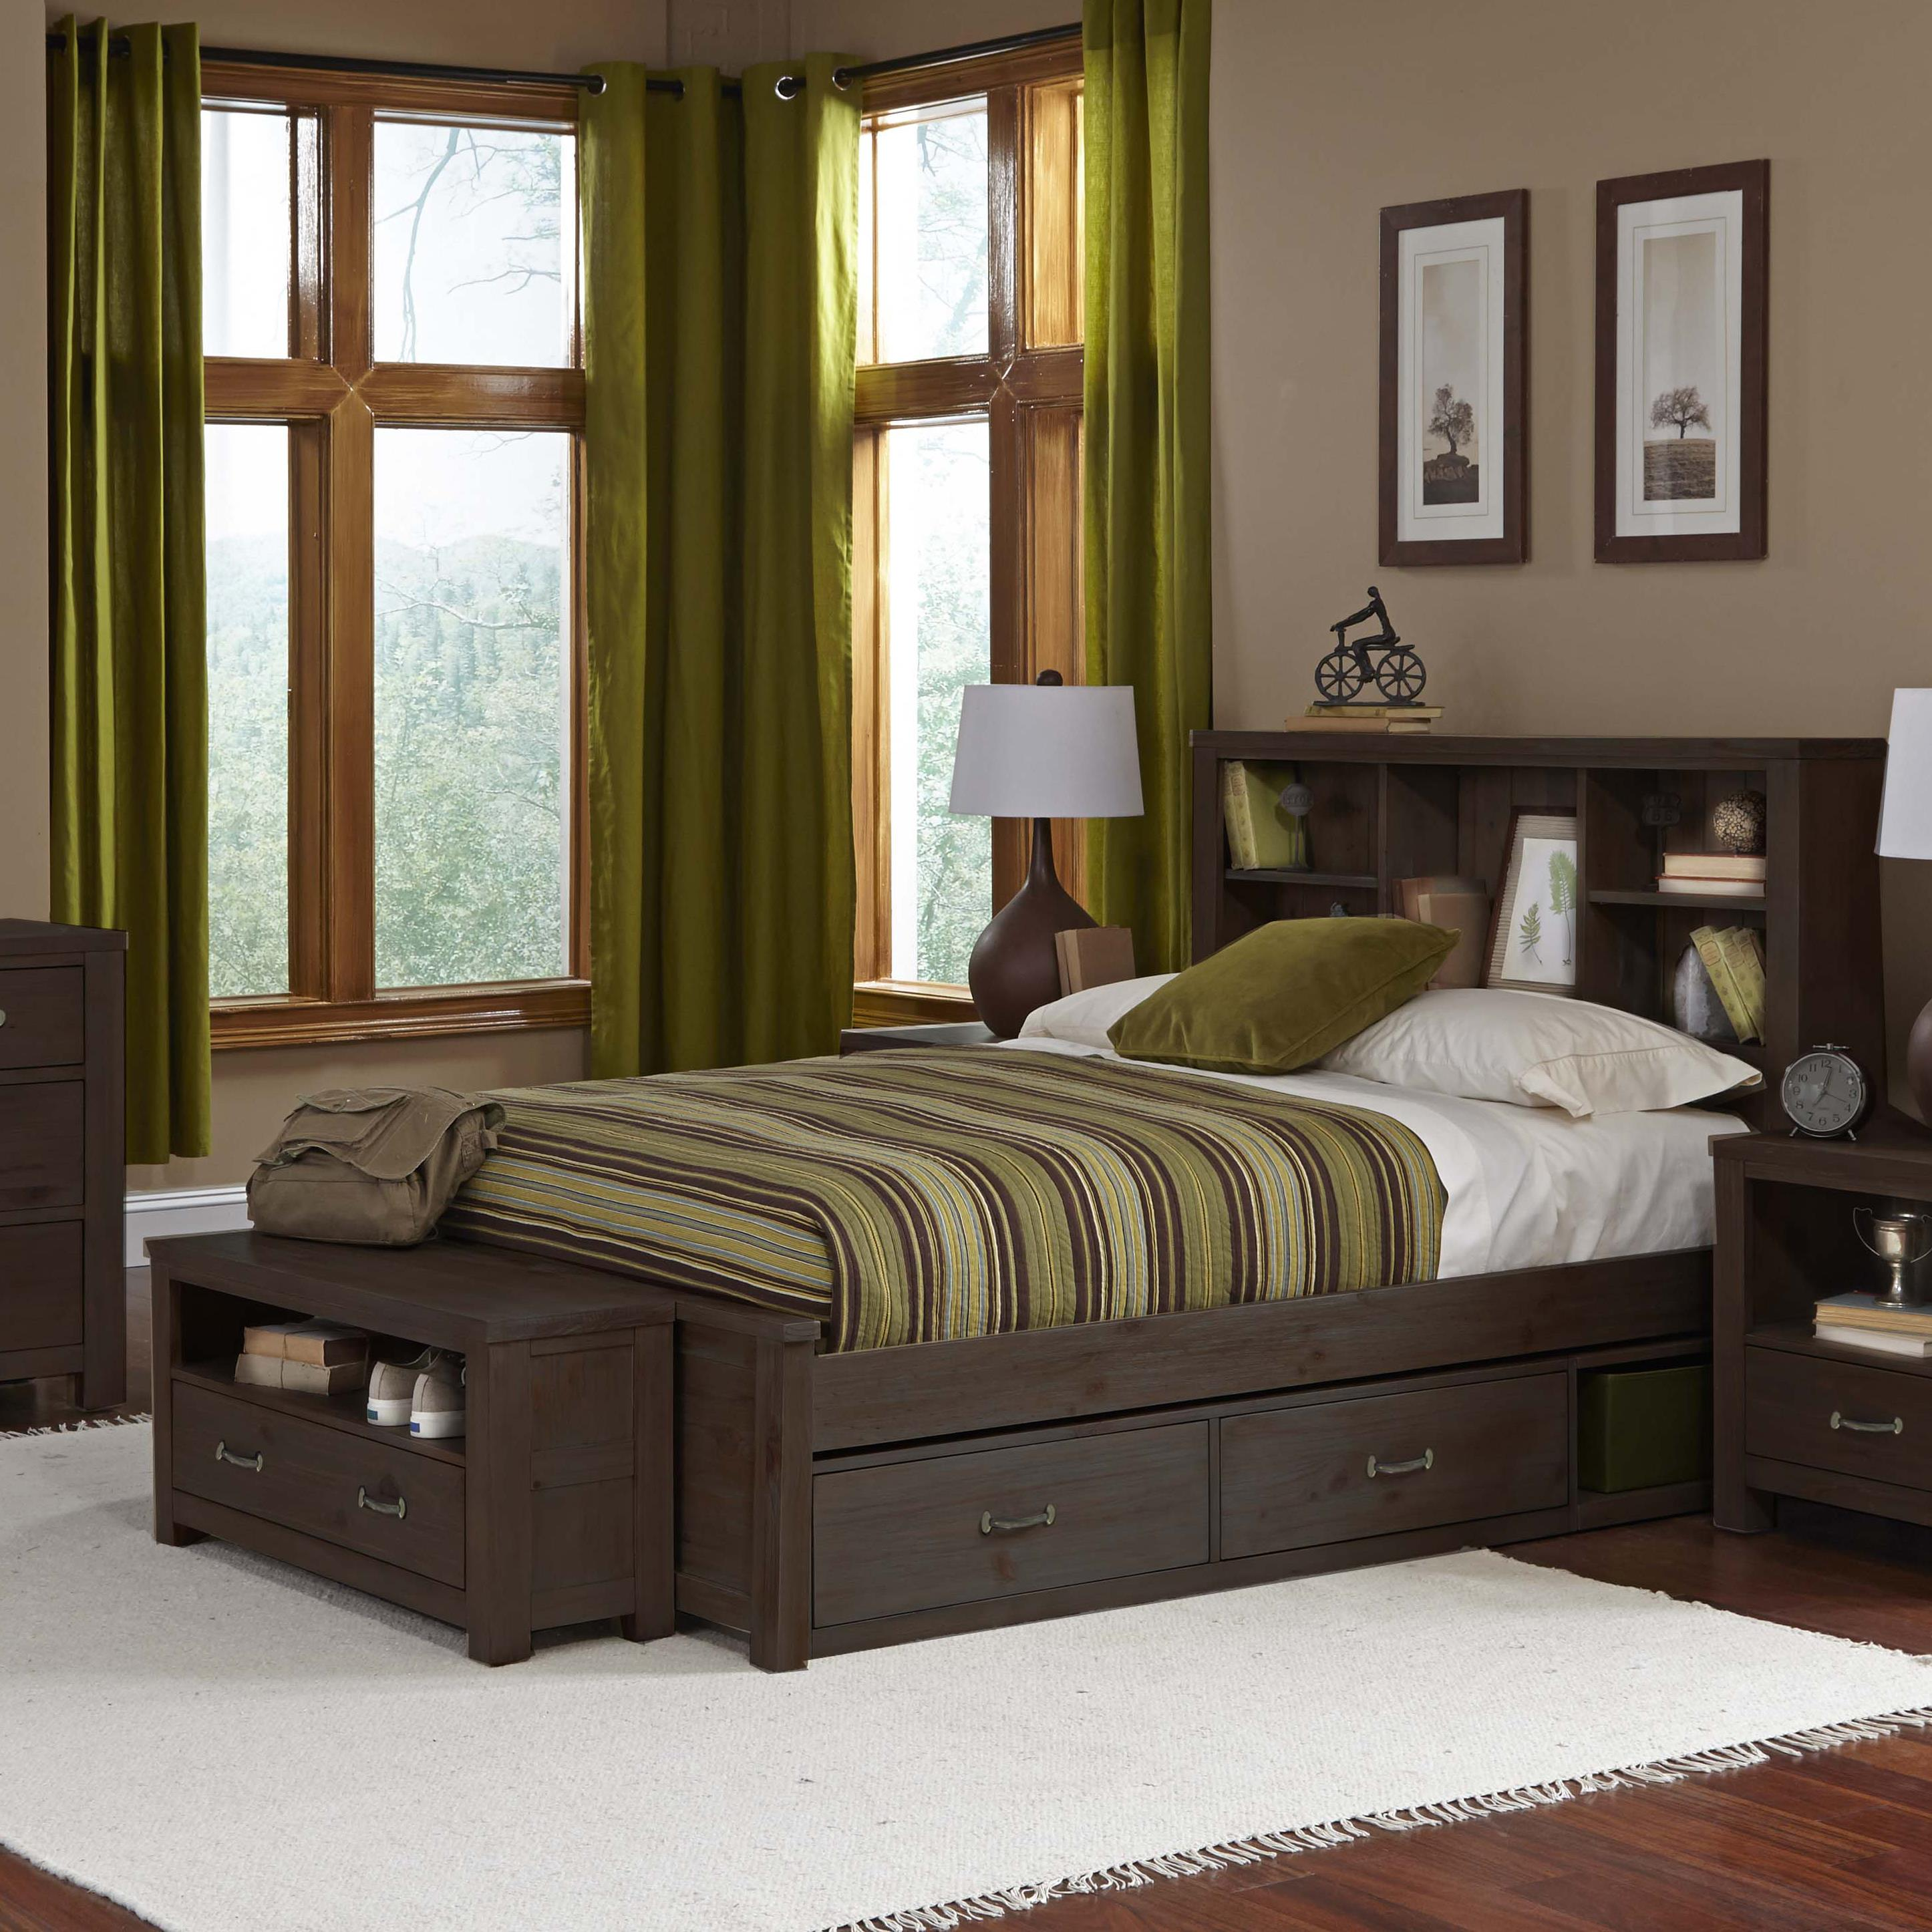 Highlands Twin Bookcase Bed with Underbed Storage by NE Kids at Stoney Creek Furniture